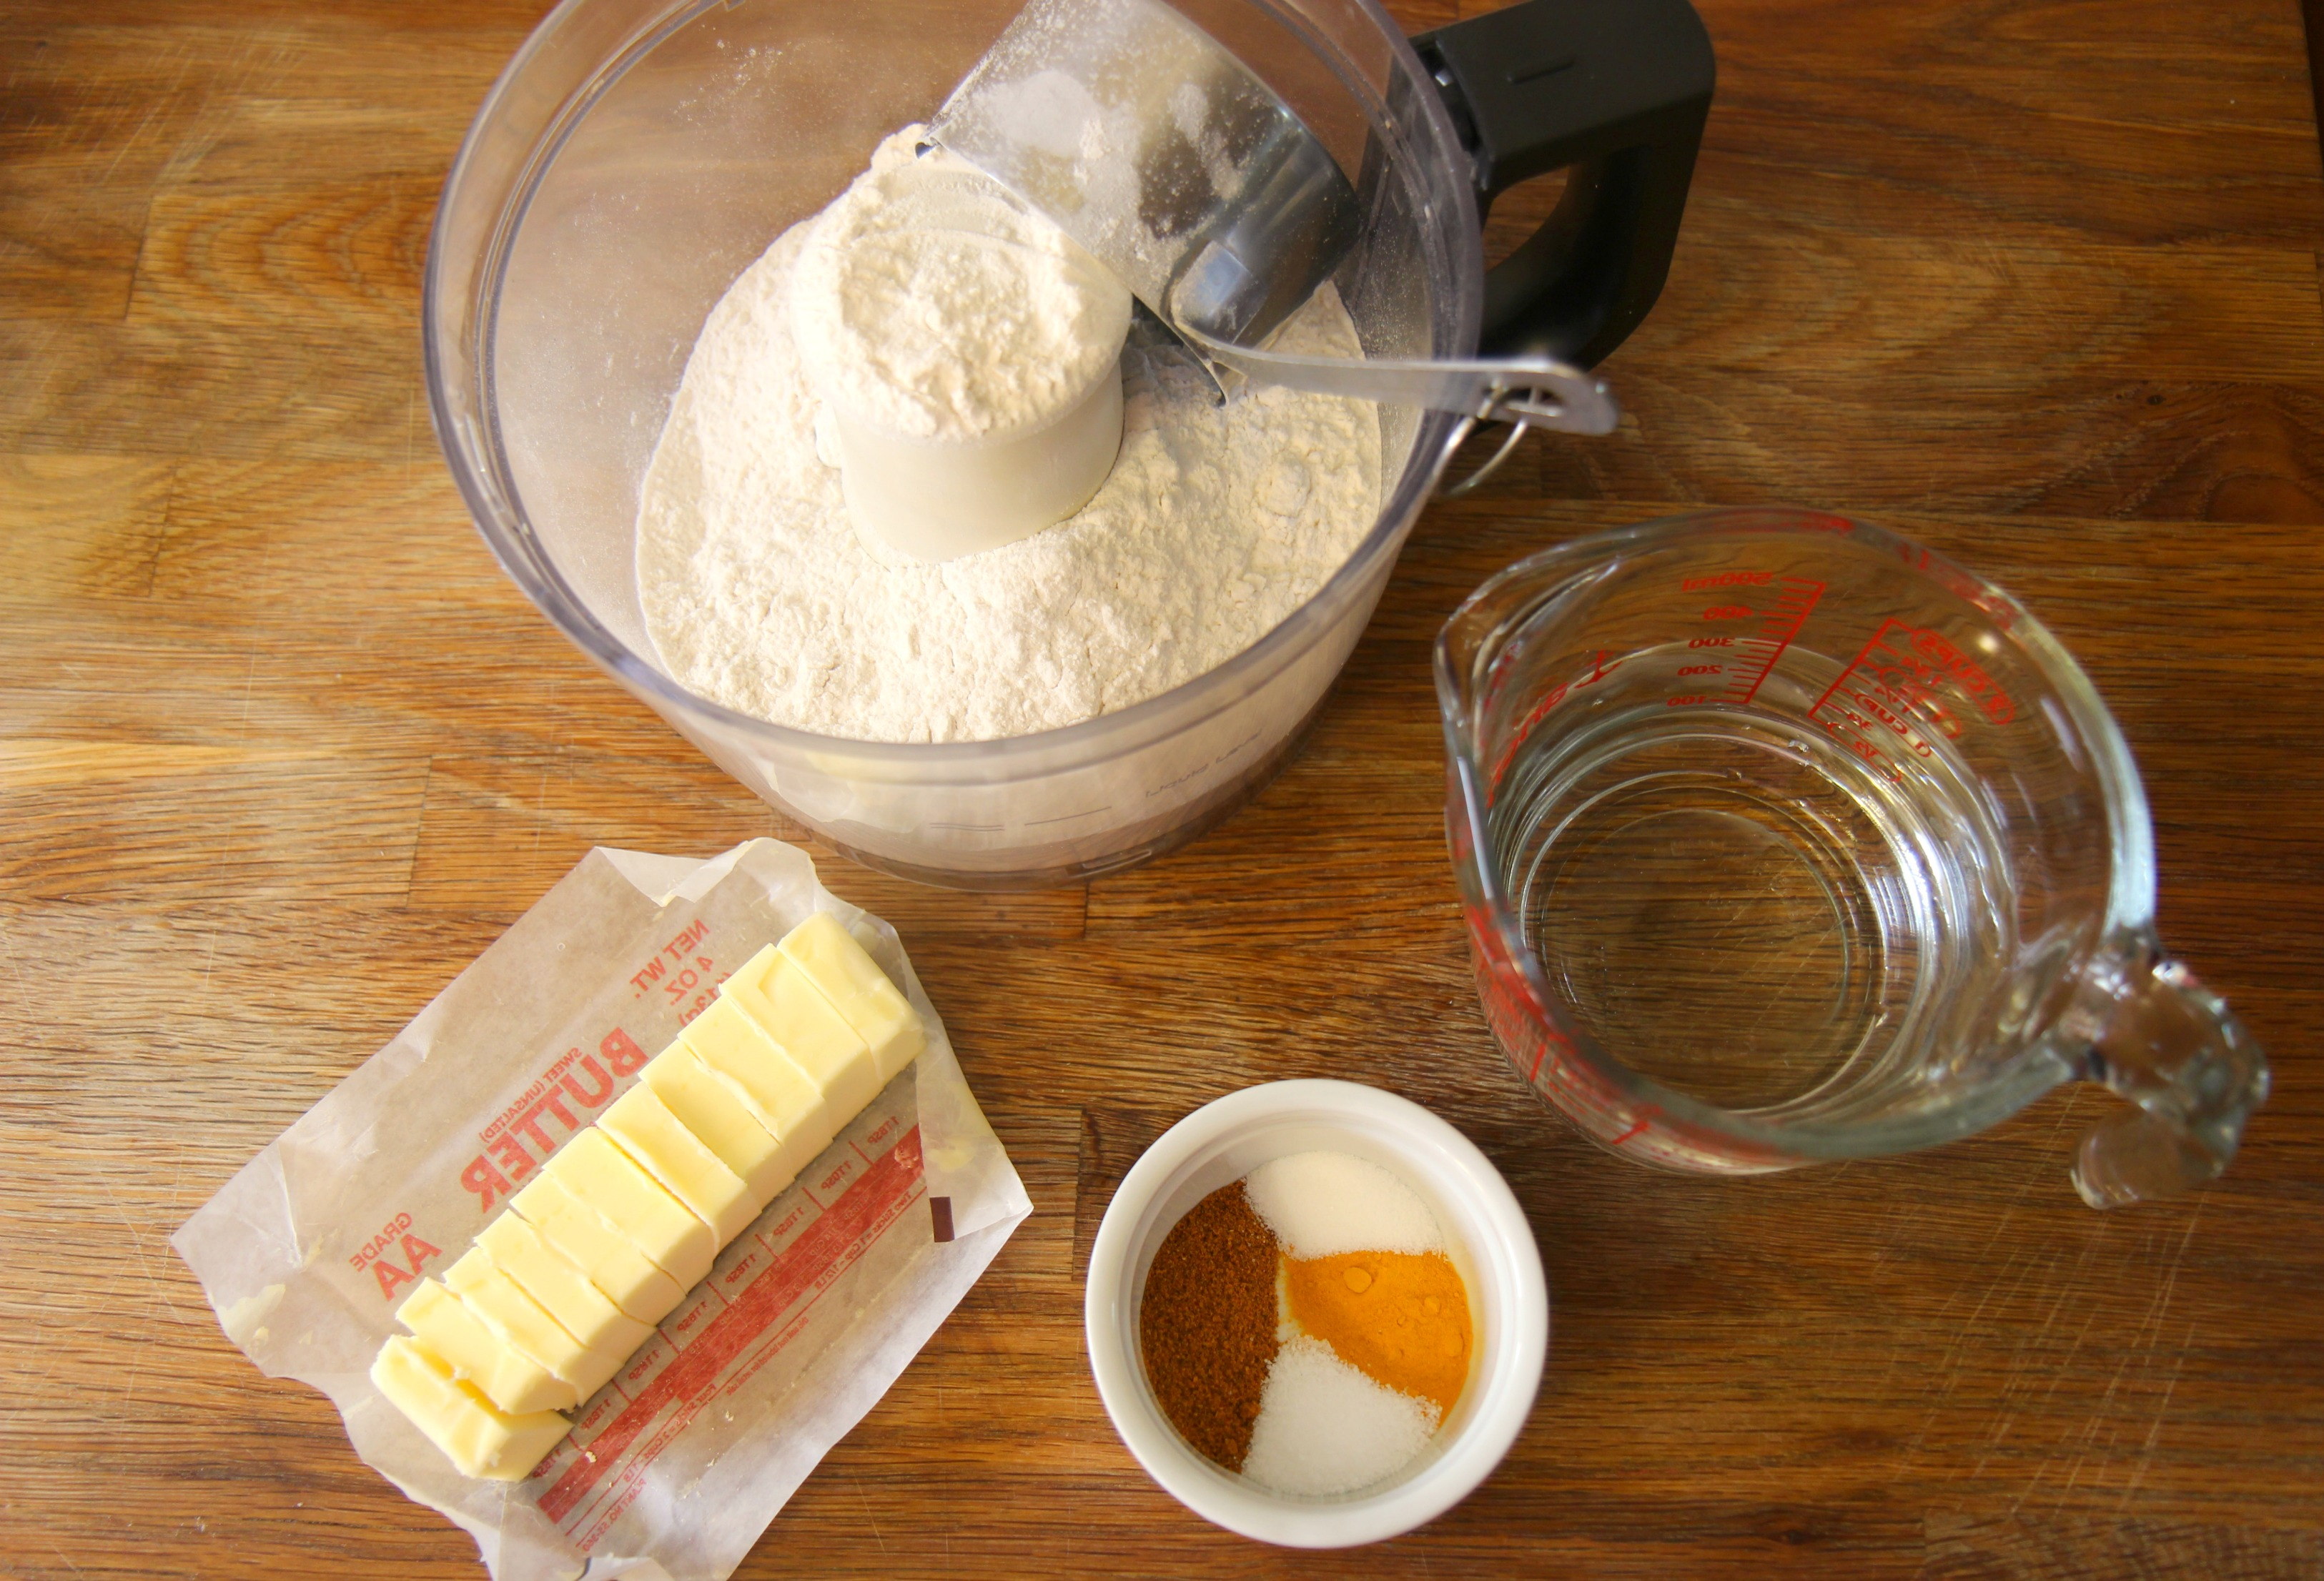 flour in a food processor, stick of butter, spices in a small ramekin, and a measuring cup with water.